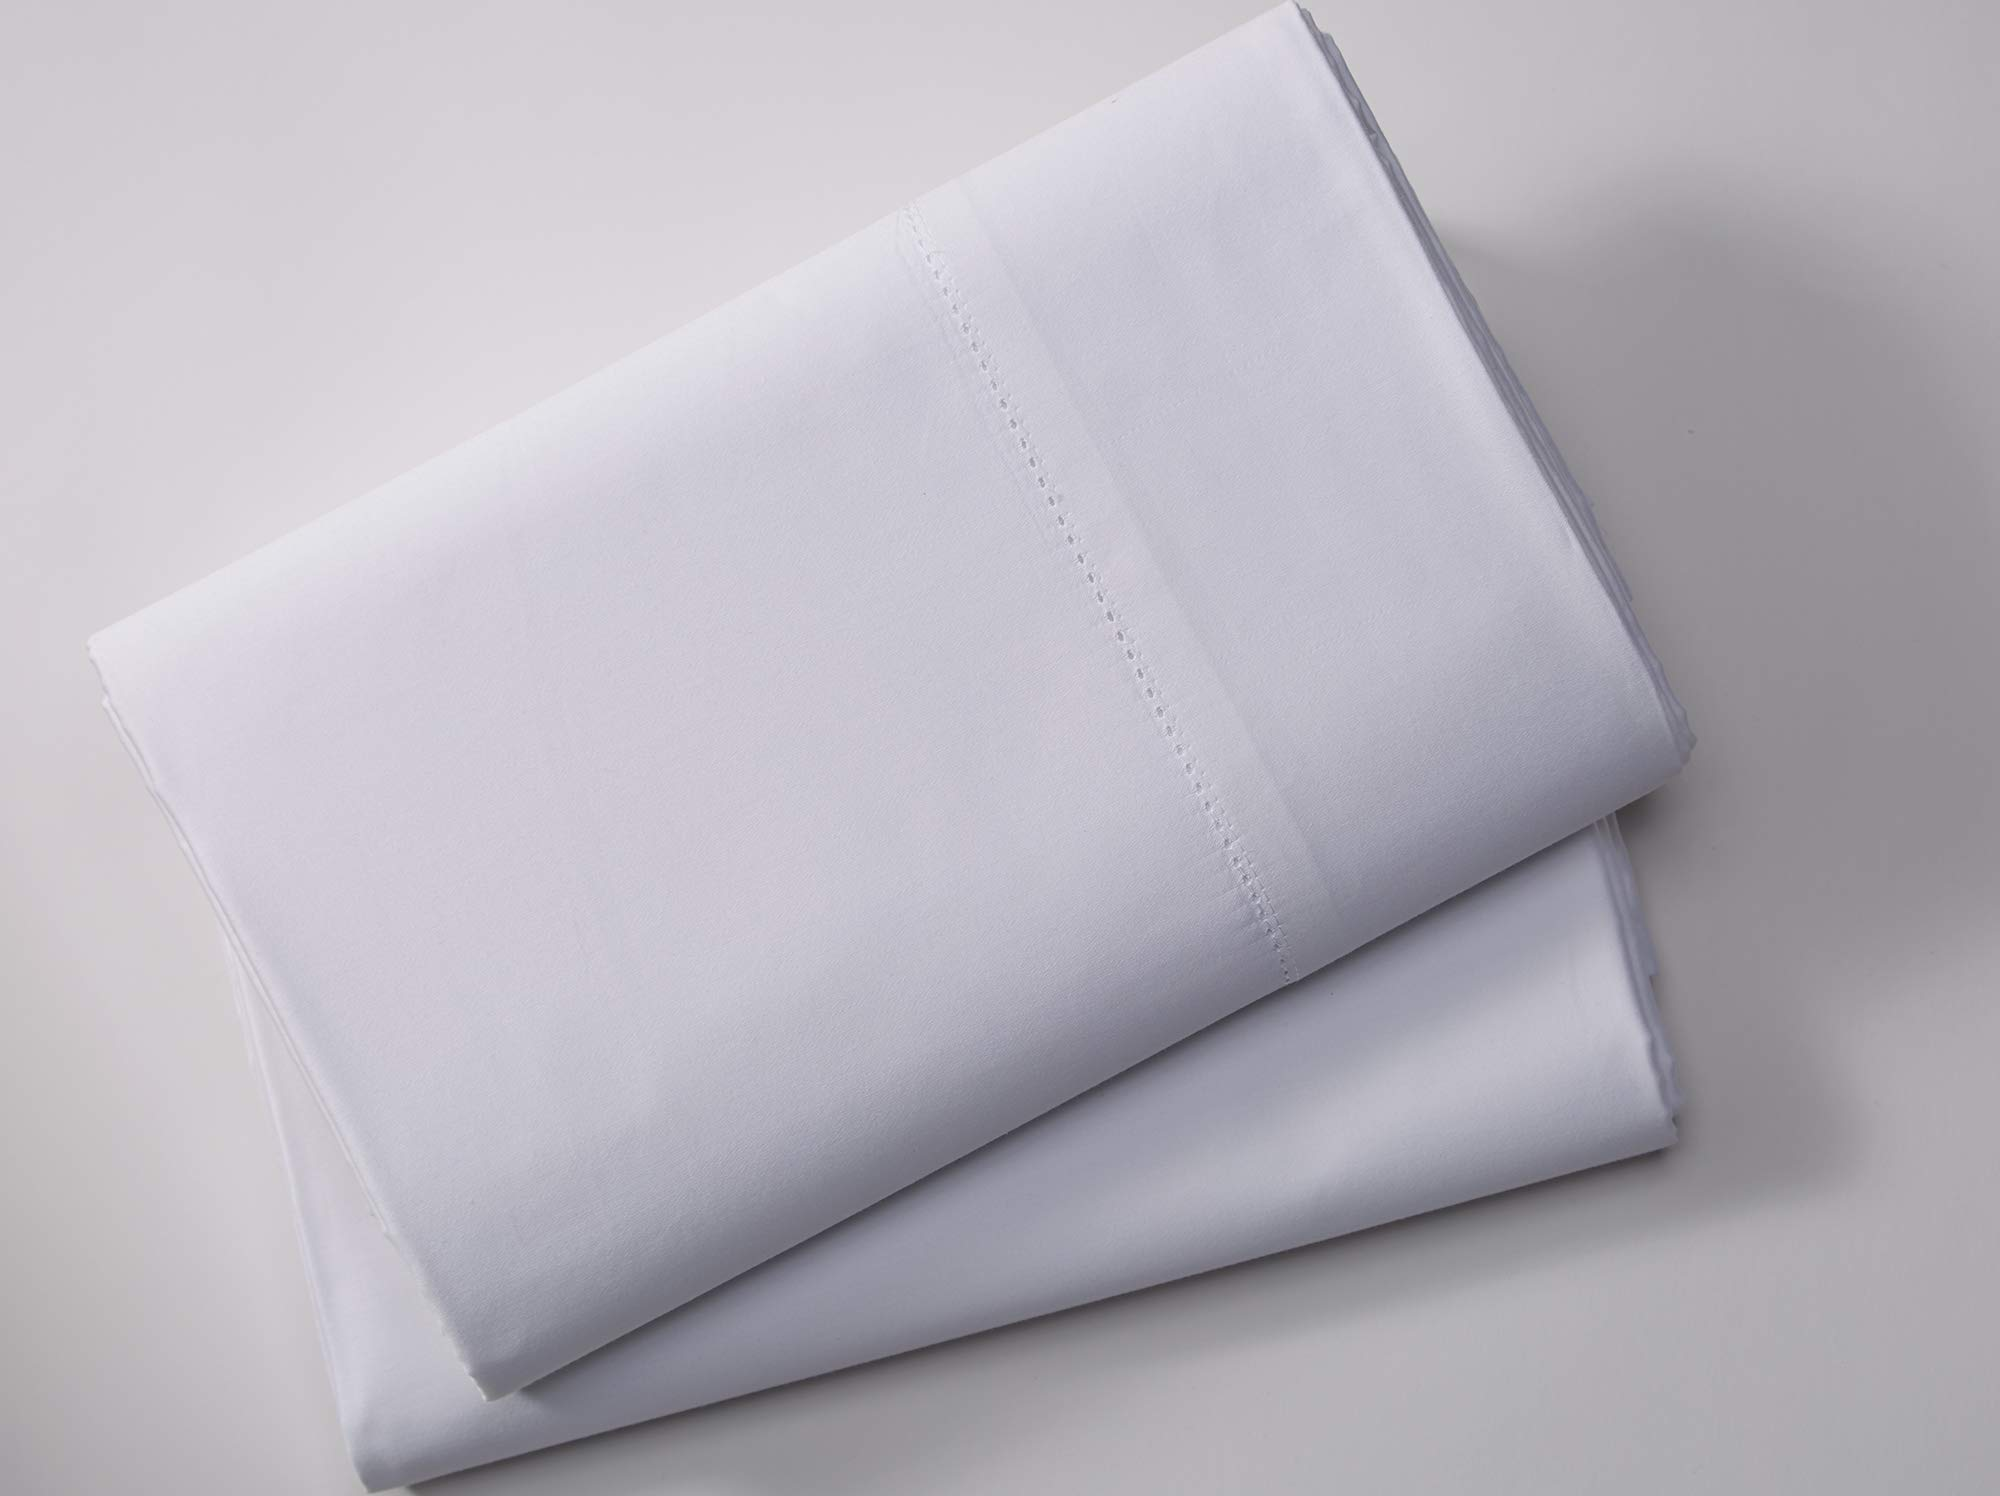 Marriott Signature Pillowcases - Soft, Breathable Cotton Blend Pillowcases Exclusively Hotels - Queen Size, Pair